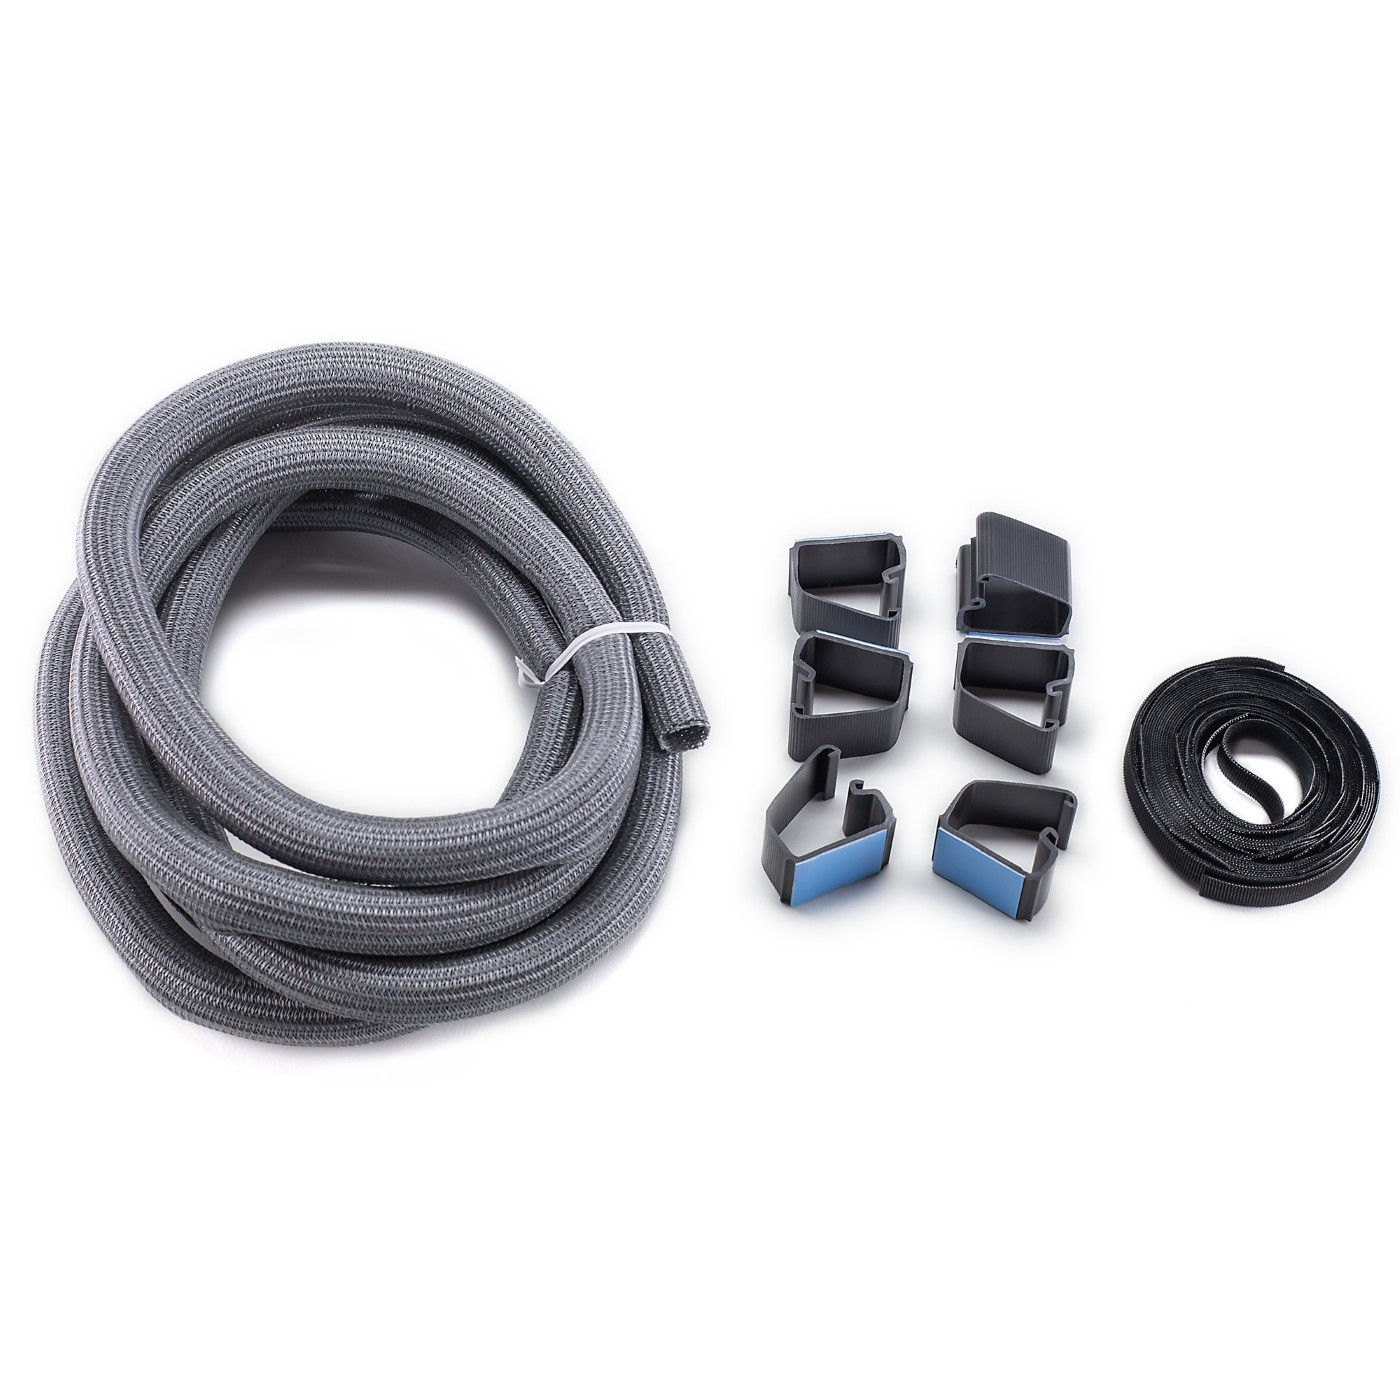 BUSH BUSINESS FURNITURE CABLE MANAGEMENT KIT. FREE SHIPPING